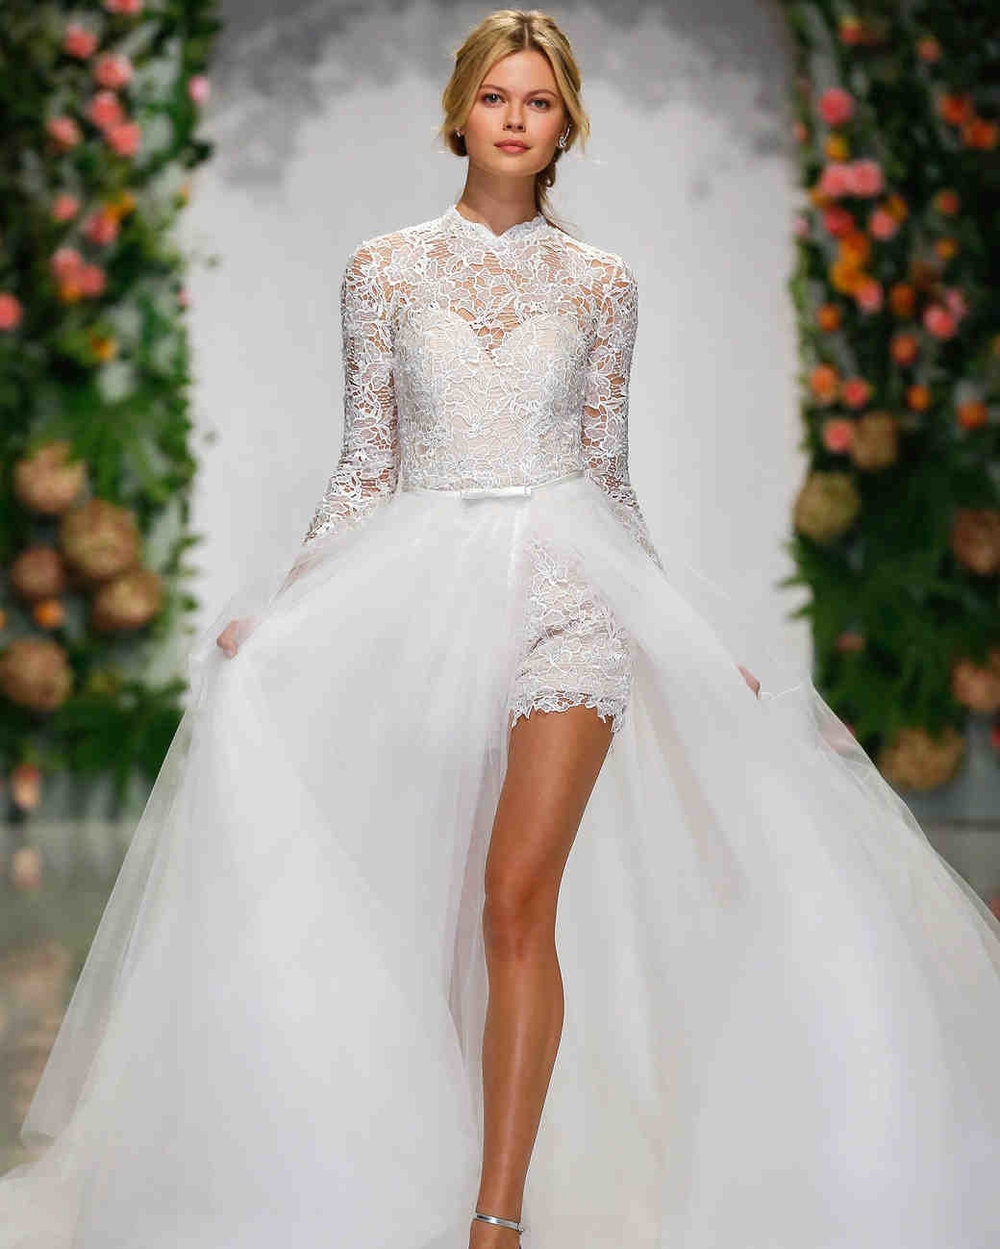 Bridalbliss.com | 2019 Wedding Gown Trends | Madeline Gardner